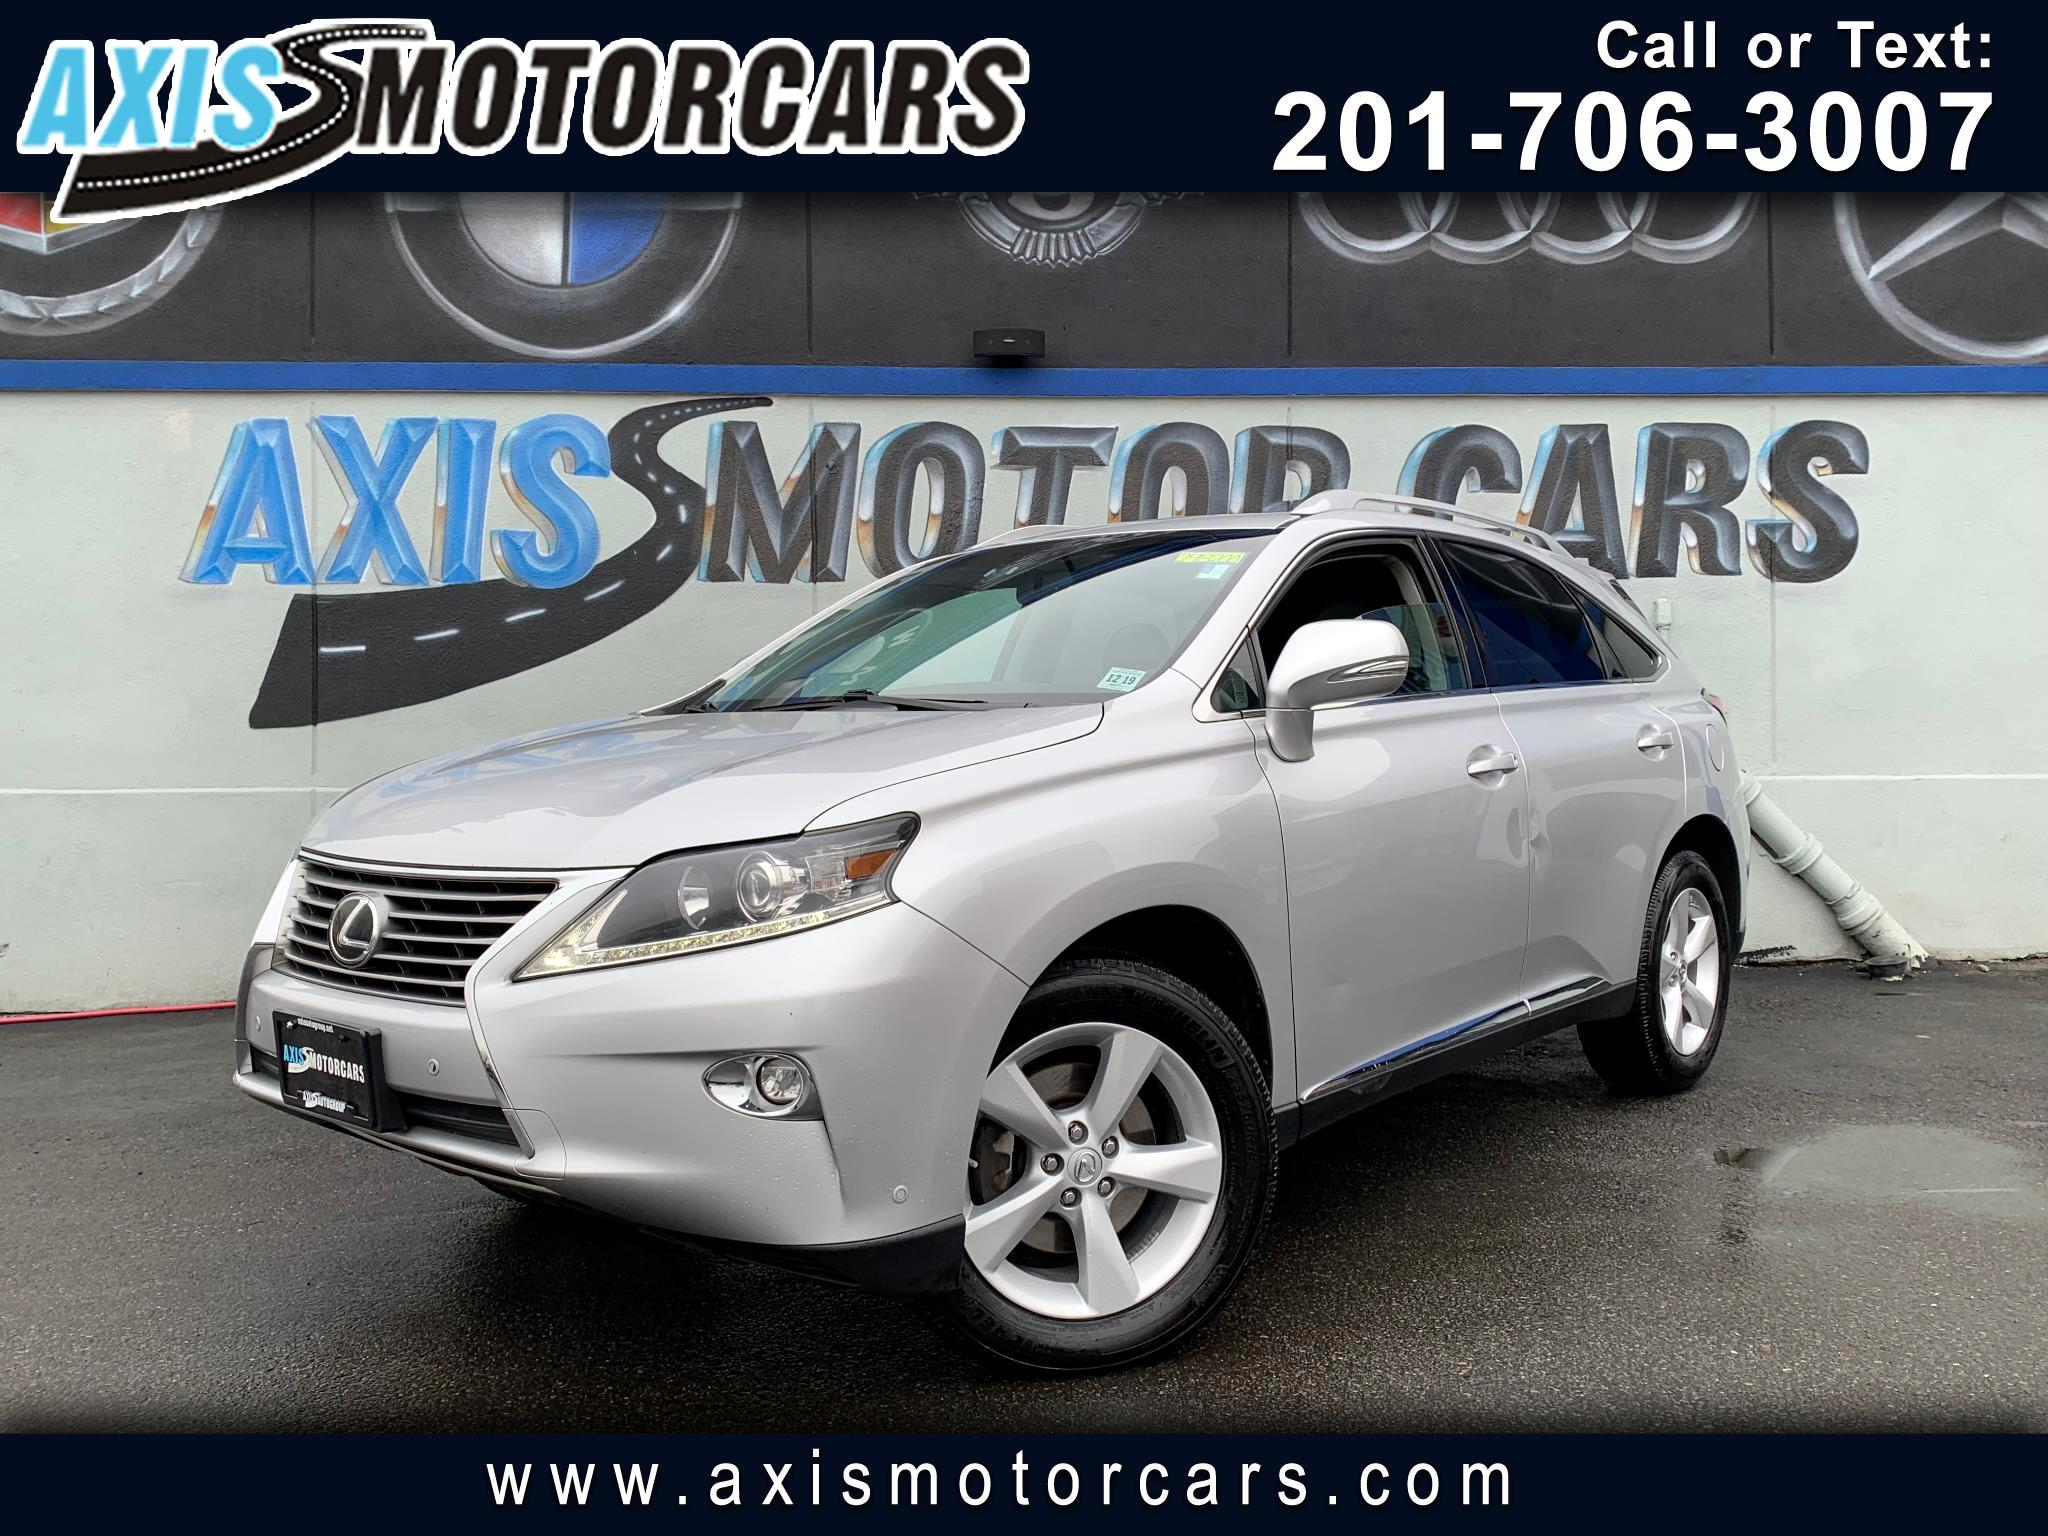 2015 Lexus RX 350 w/Navigation Bakup Camera Sun Roof